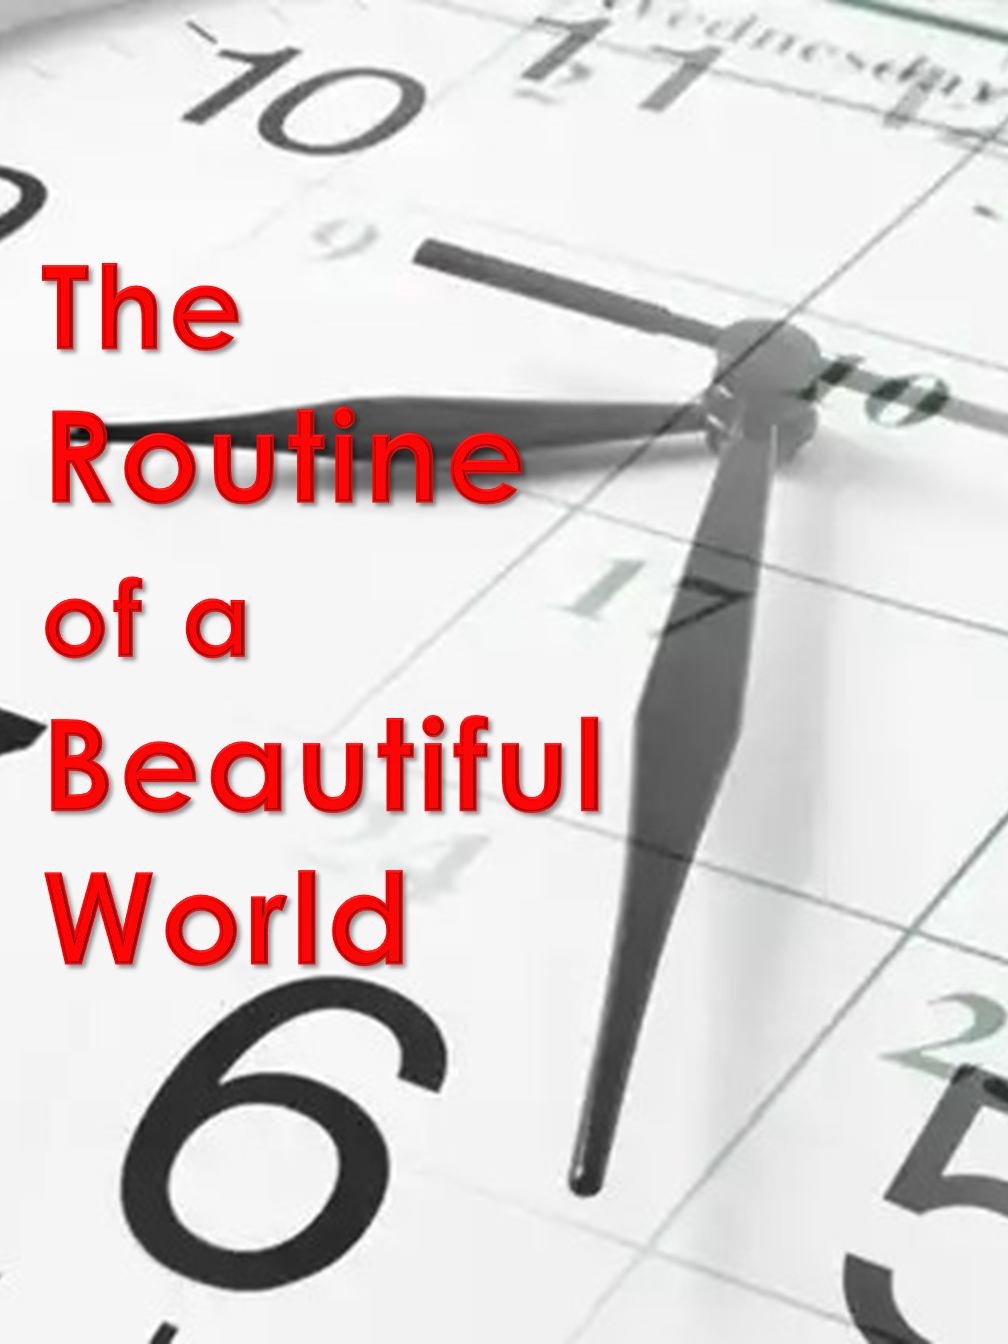 Routine of a Beatiful World